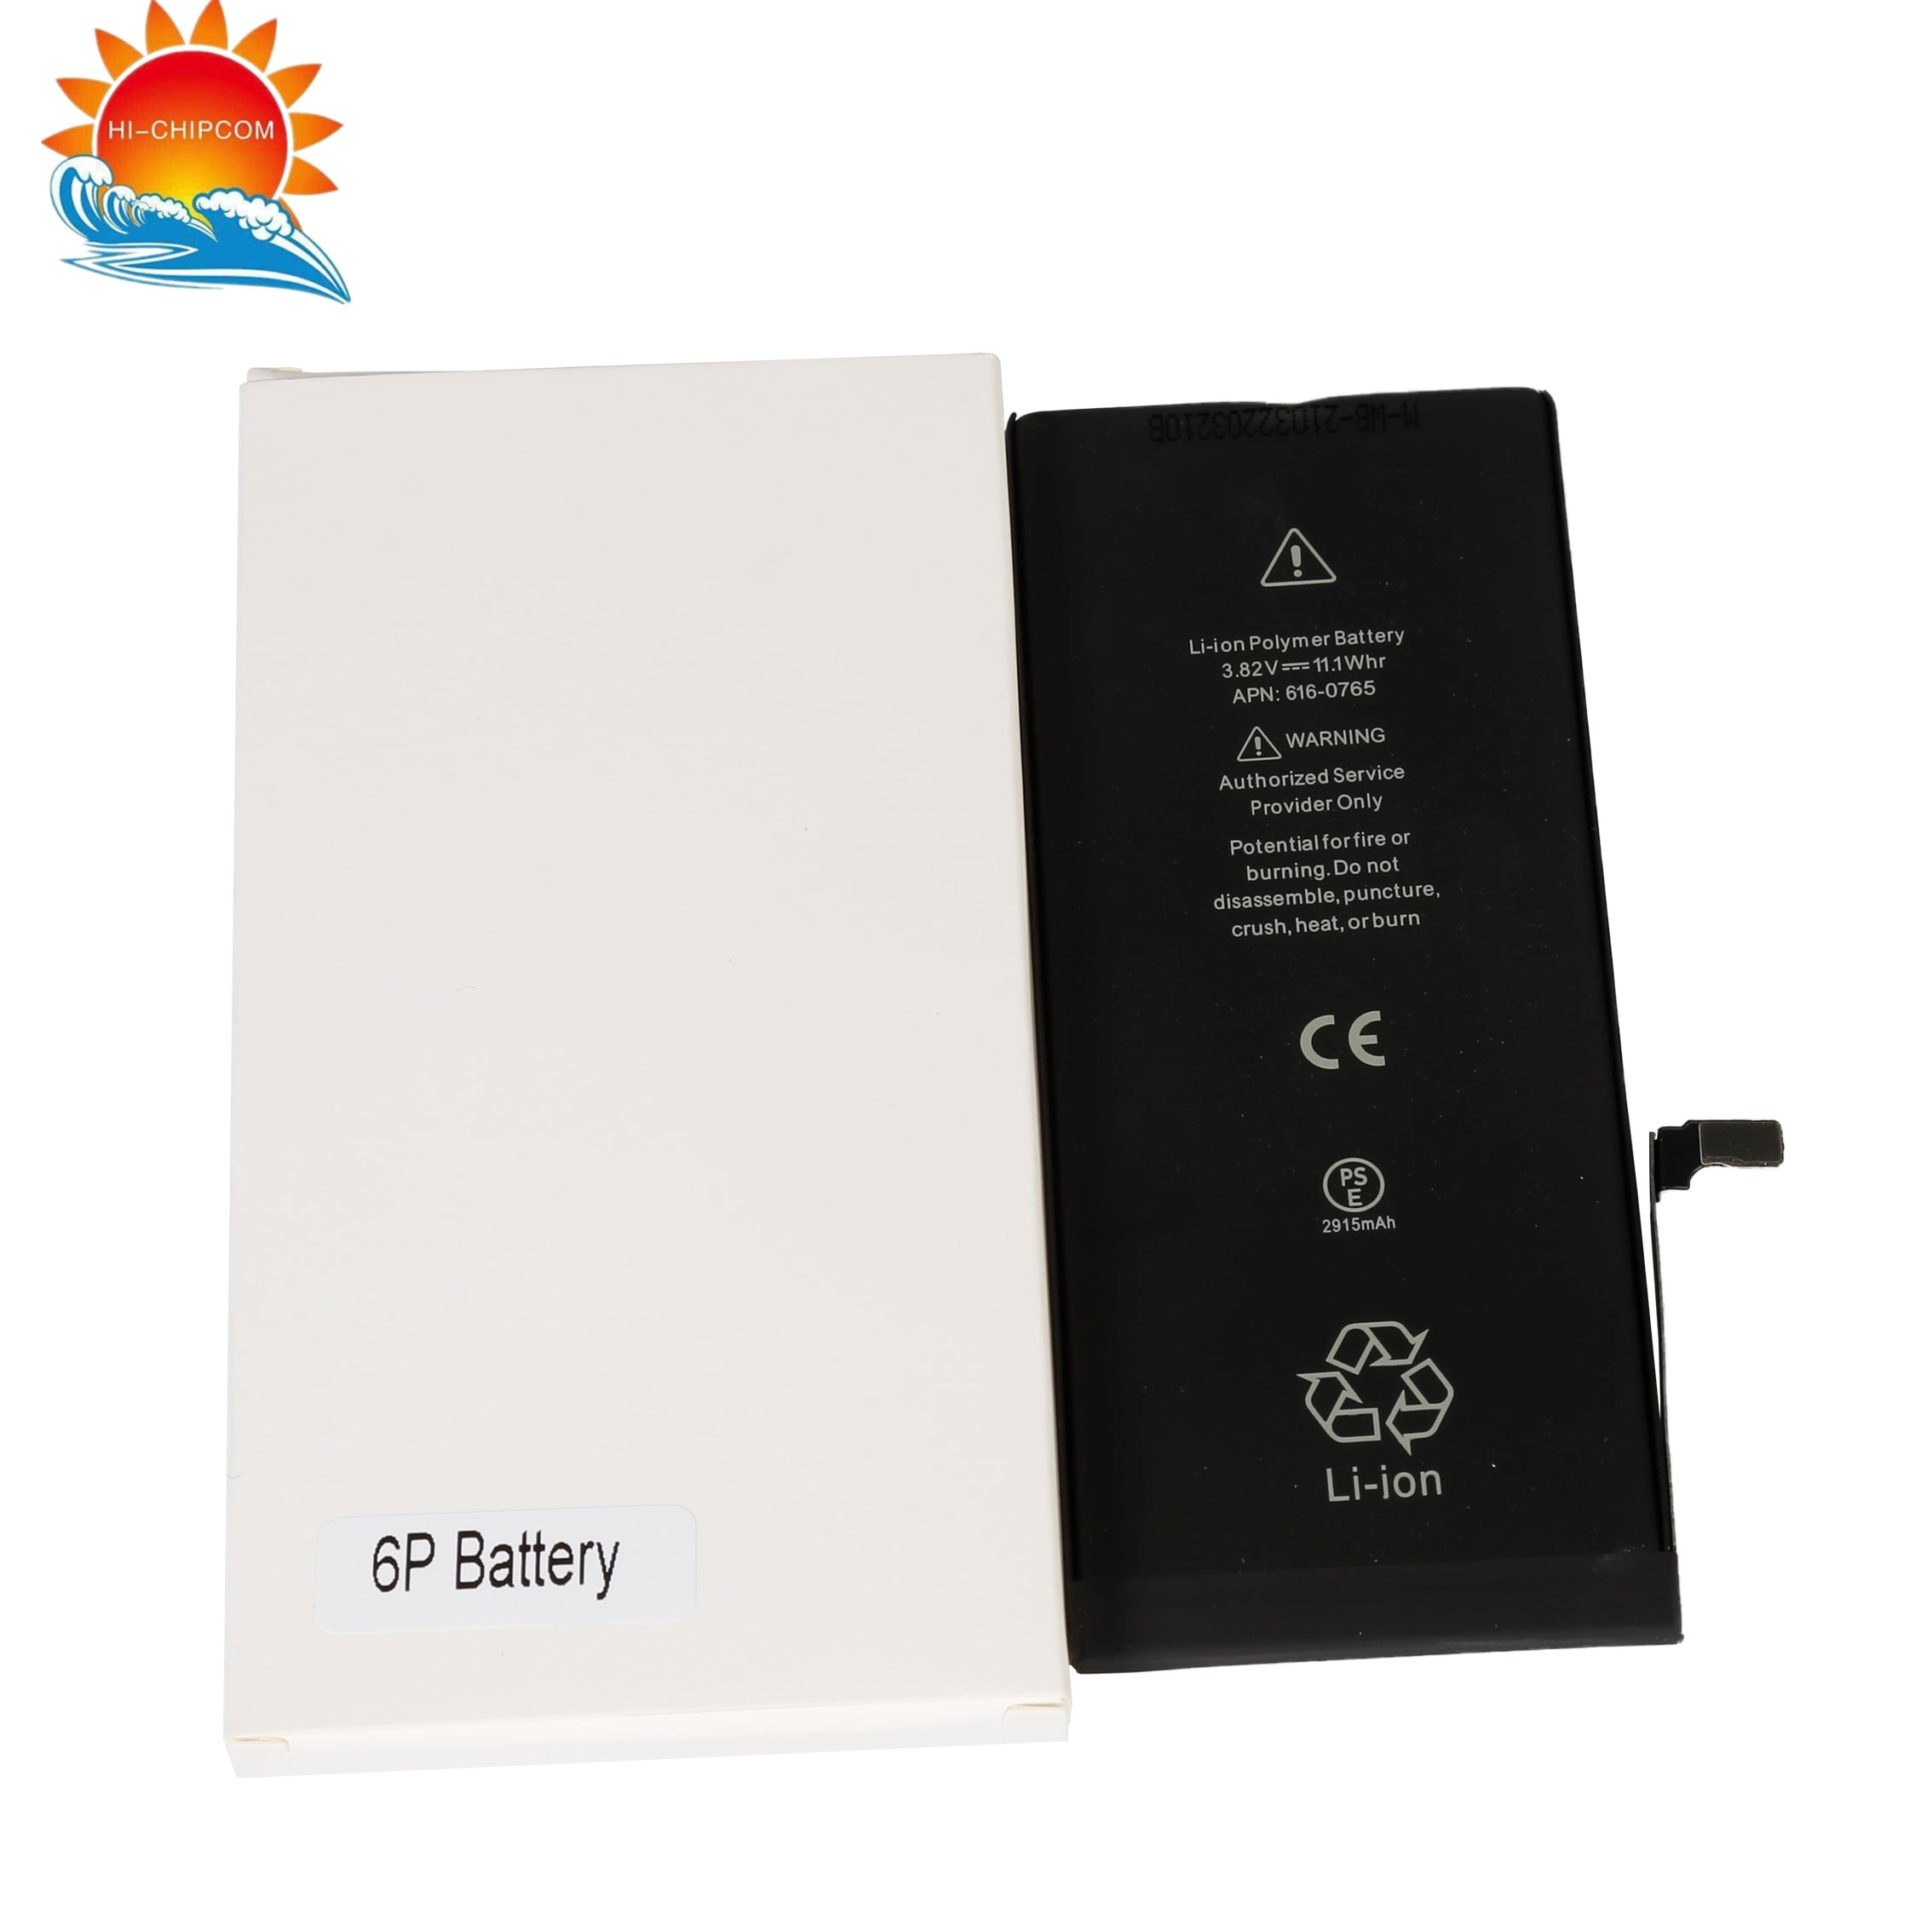 High Capacity Battery for iPhone 6 Plus